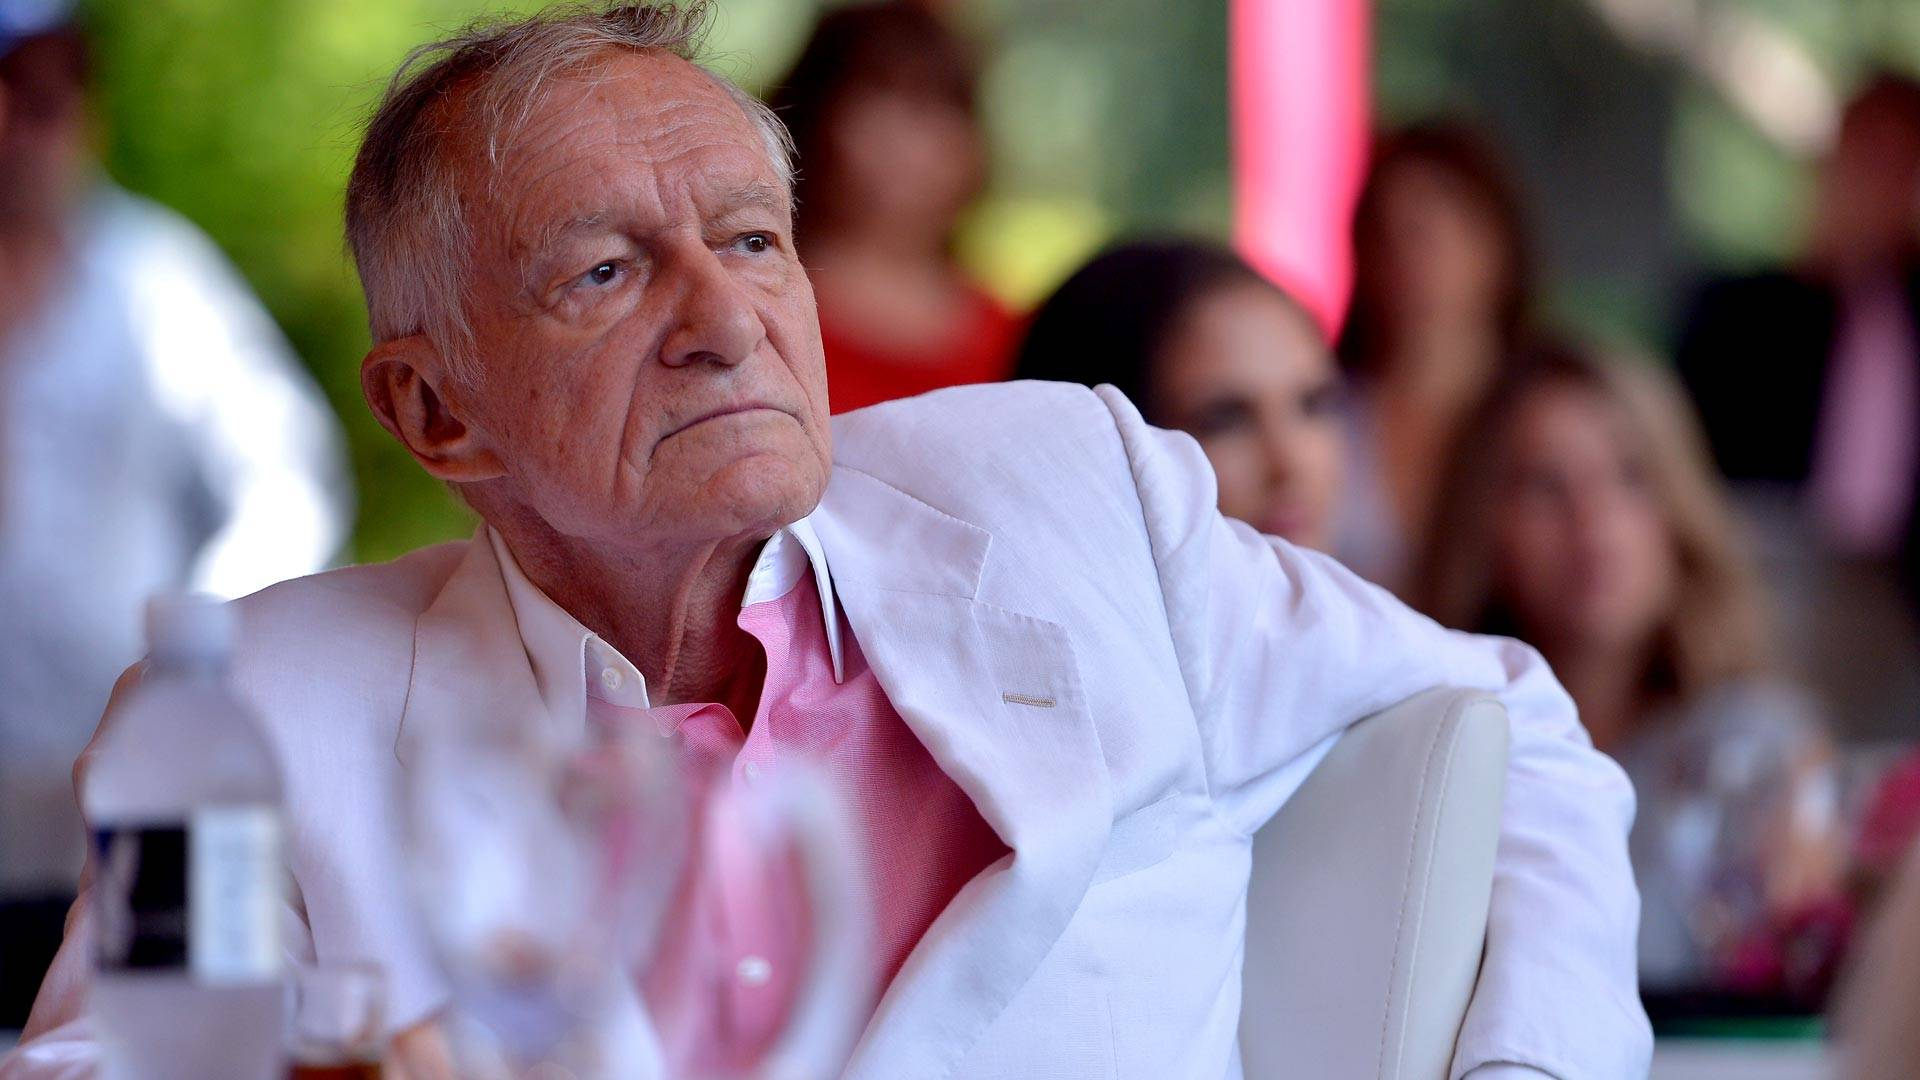 Hugh Hefner attends Playboy's 2013 Playmate Of The Year luncheon honoring Raquel Pomplun at The Playboy Mansion on May 9, 2013. Charley Gallay/Getty Images